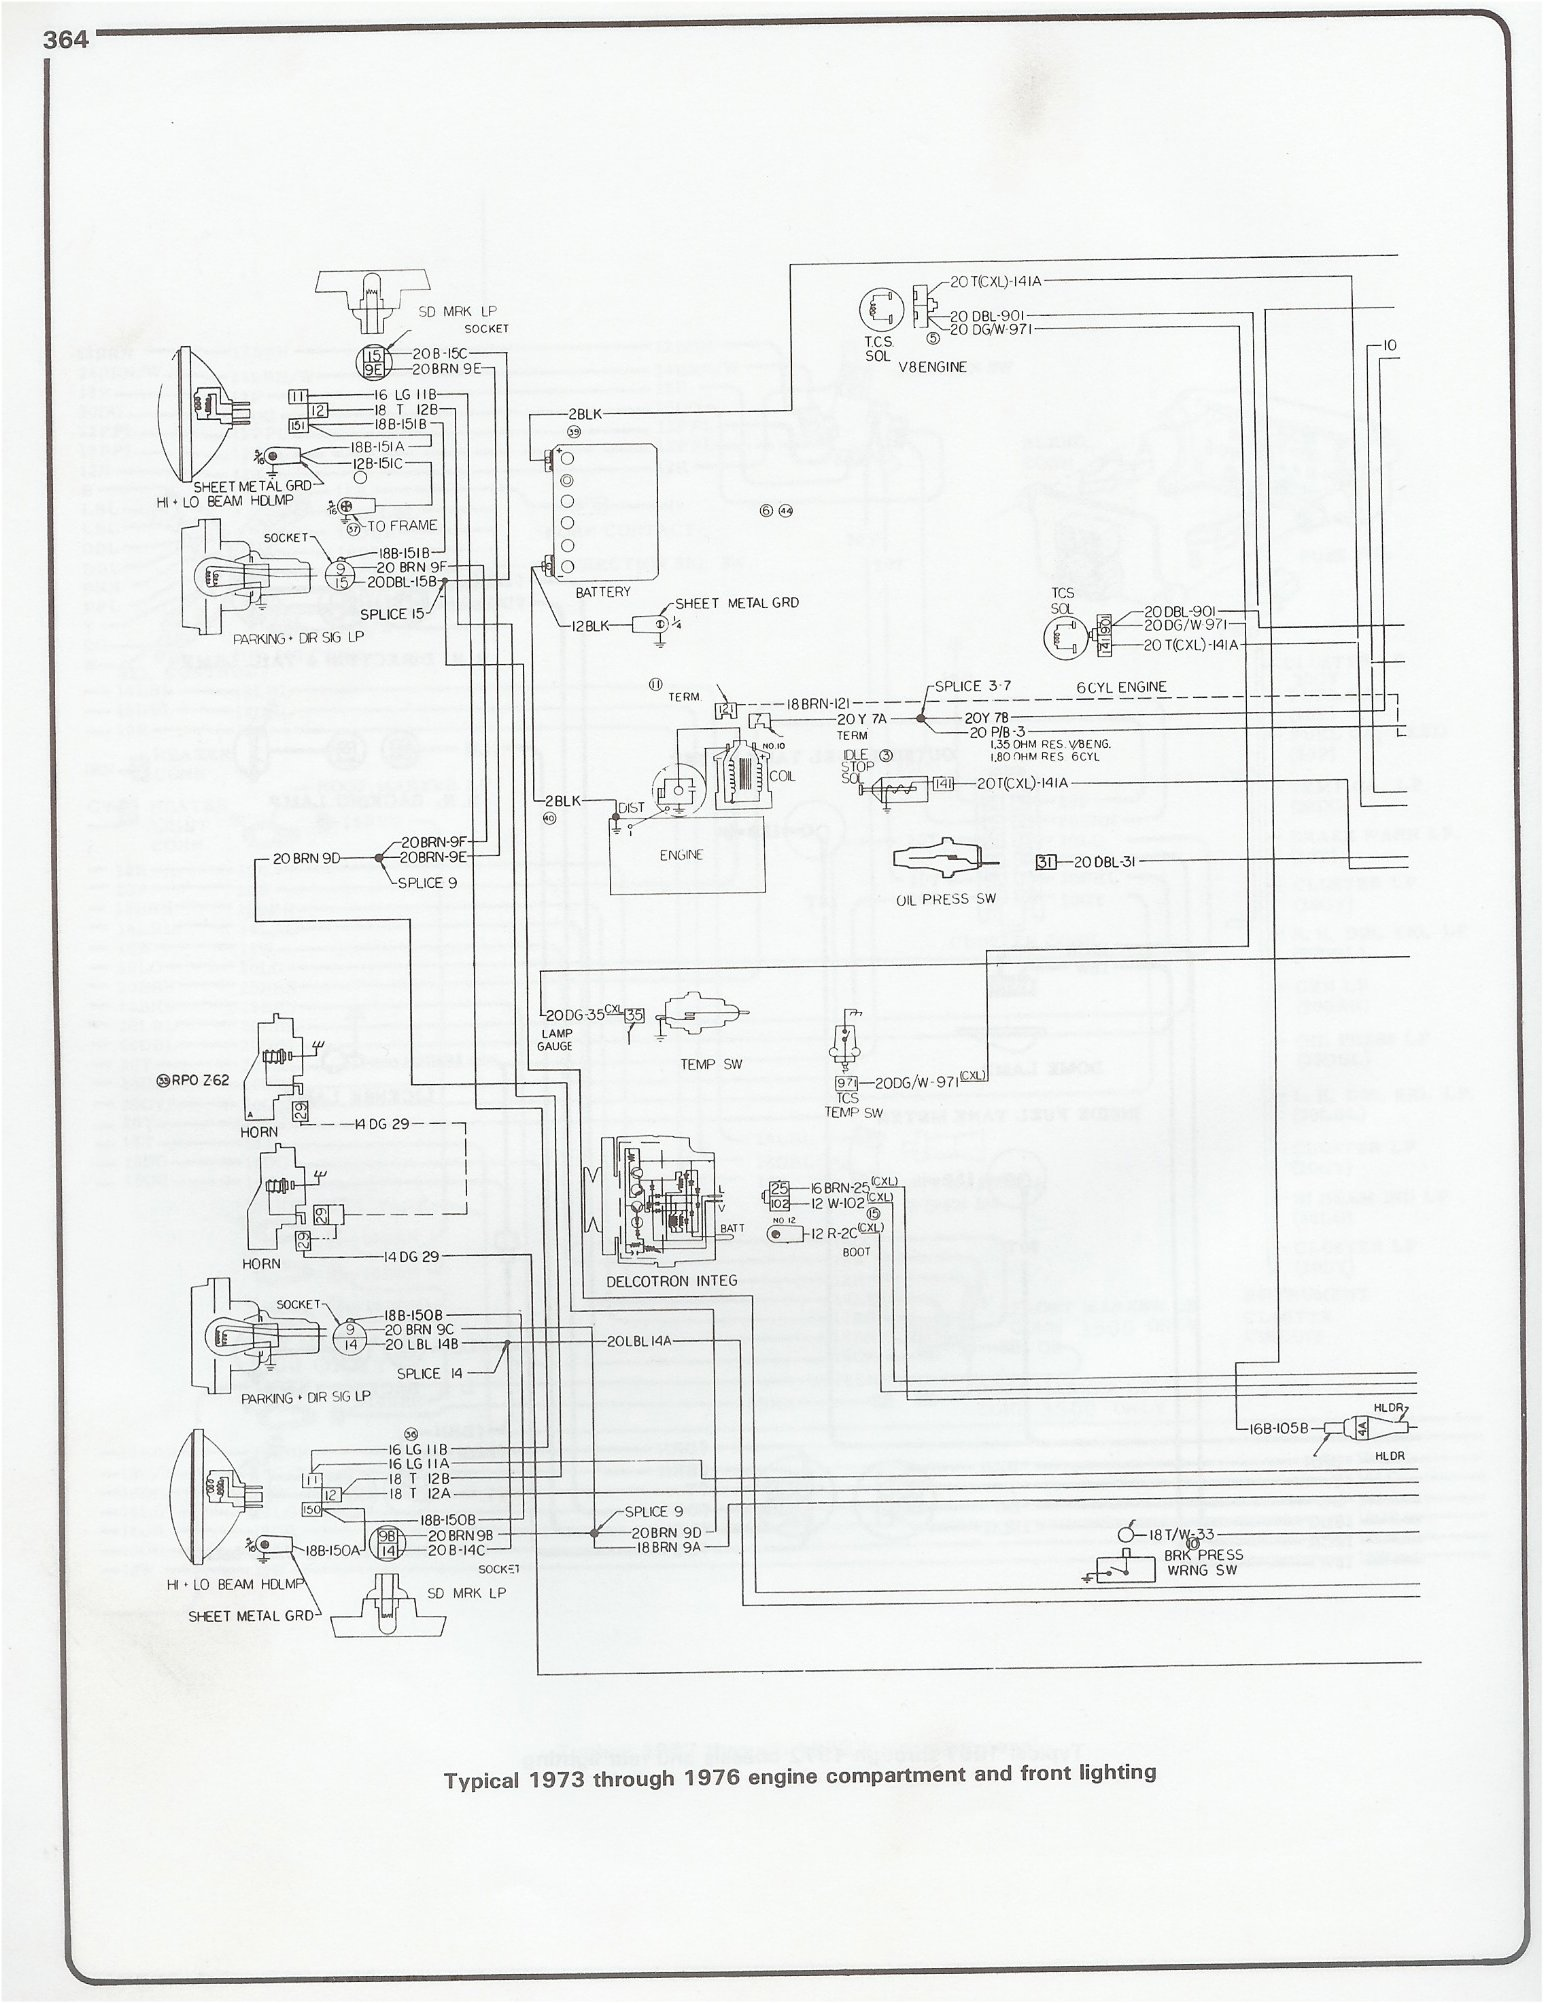 complete 73 87 wiring diagrams rh forum 73 87chevytrucks com 2000 chevy  silverado ignition wiring diagram